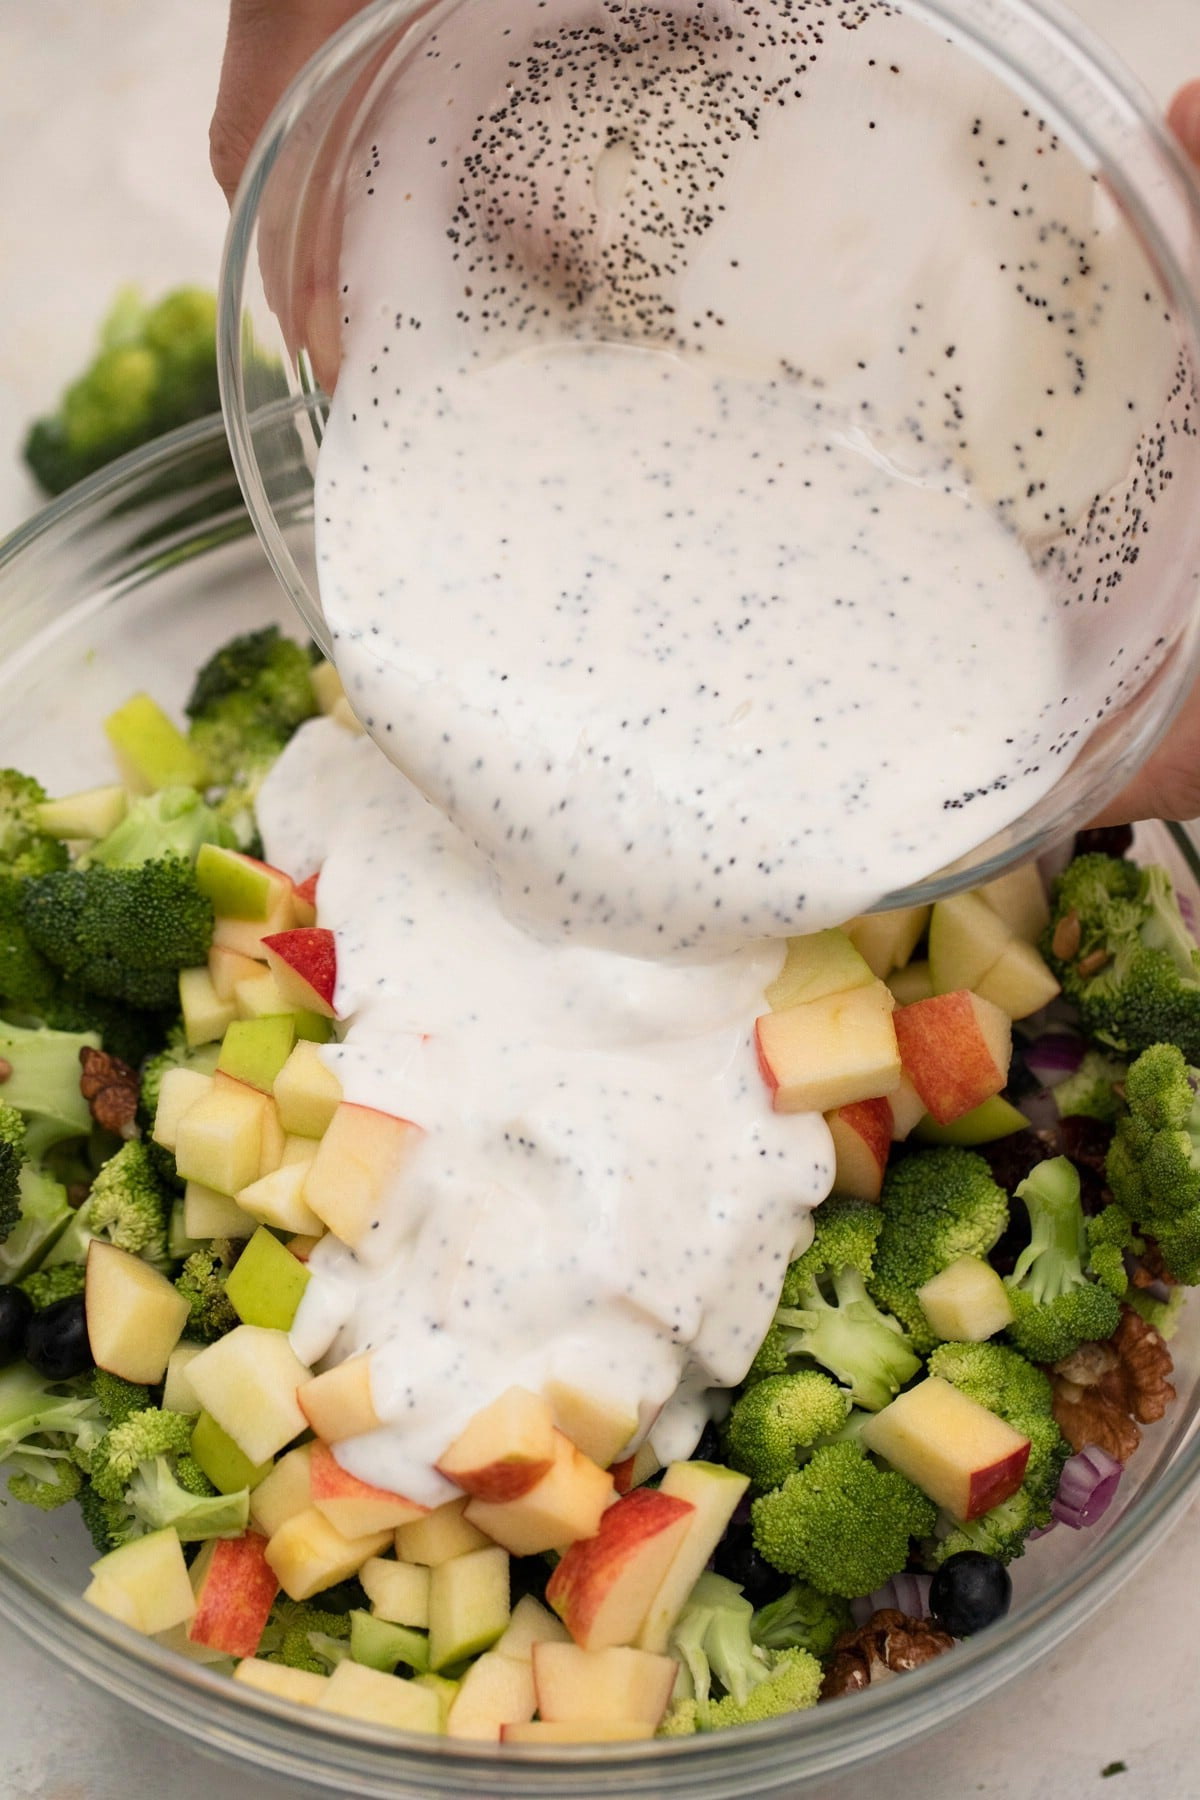 Pouring dressing over broccoli salad